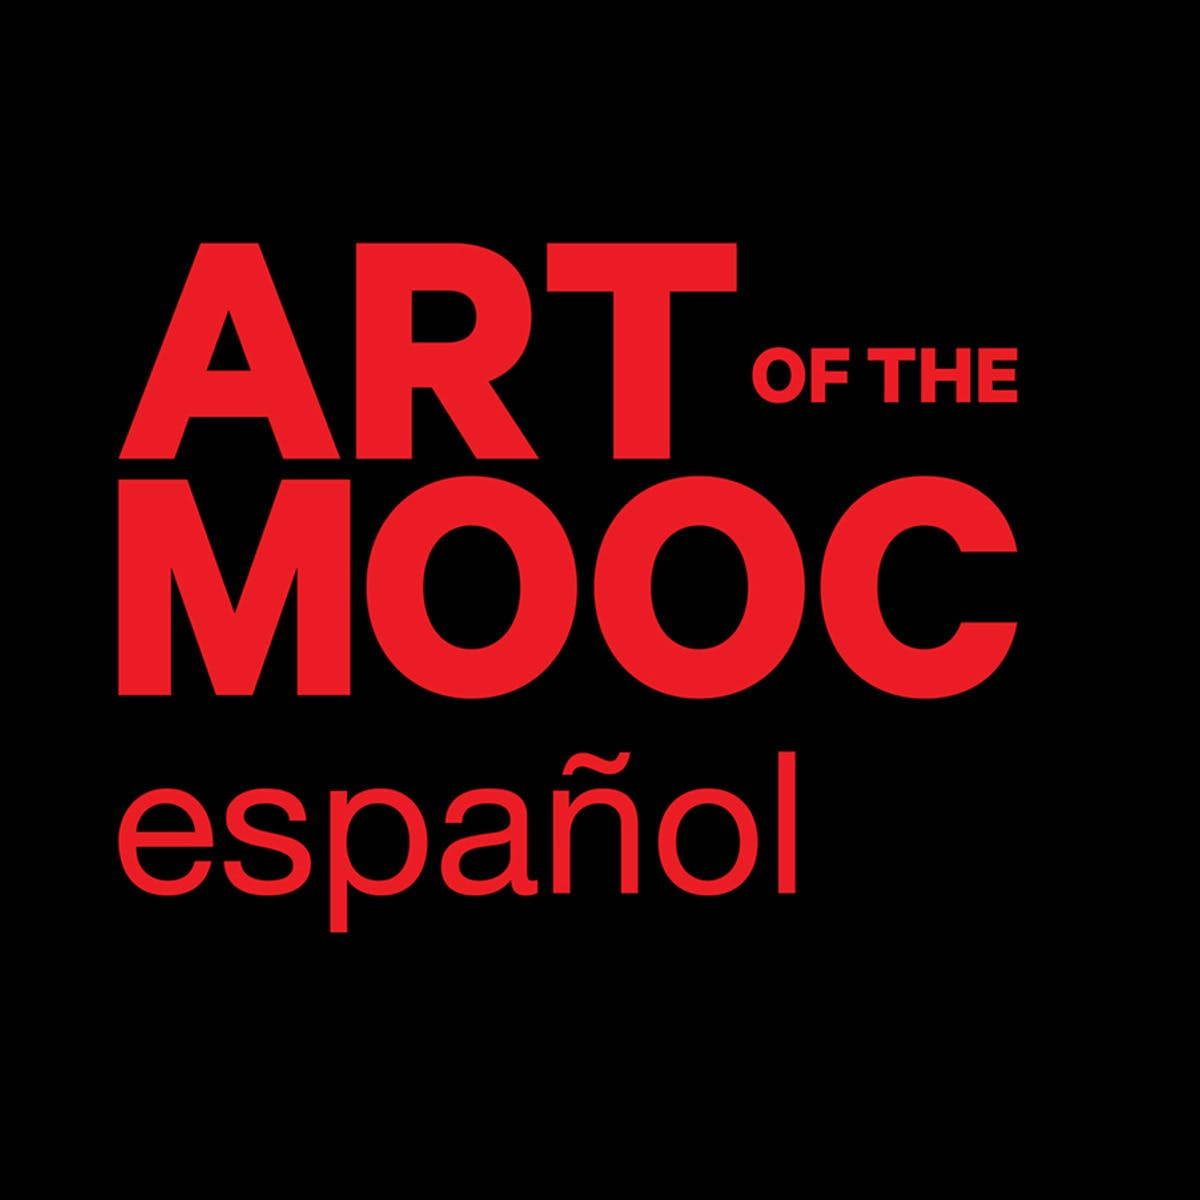 ART of the MOOC: Activismo y Movimientos Sociales